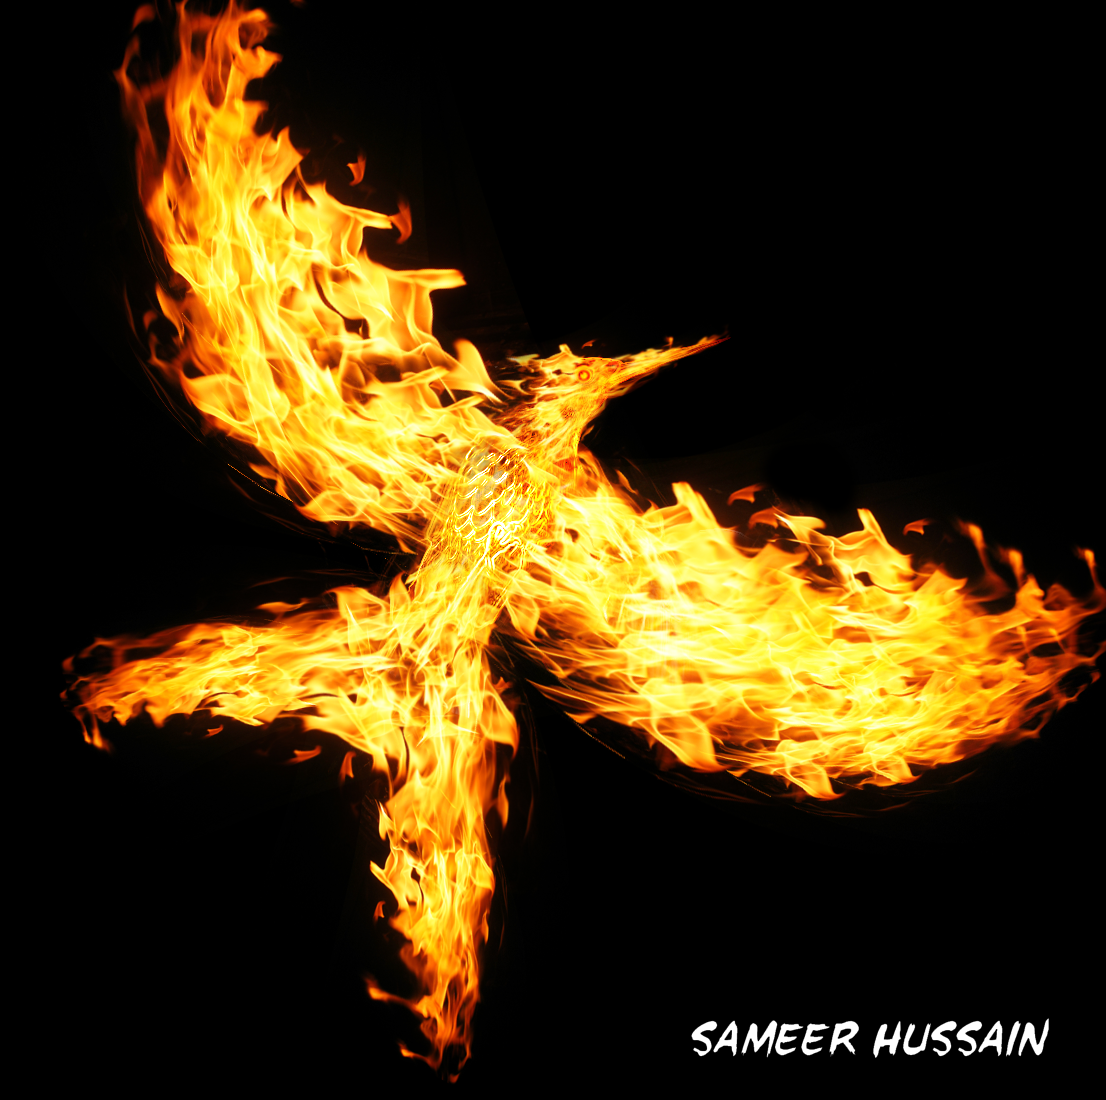 Thatsameer graphics photomanipulation mockingjay fire bird hundreds of tiny flame images manipulated in to the hunger games mockingjay bird photoshop cs5 biocorpaavc Choice Image